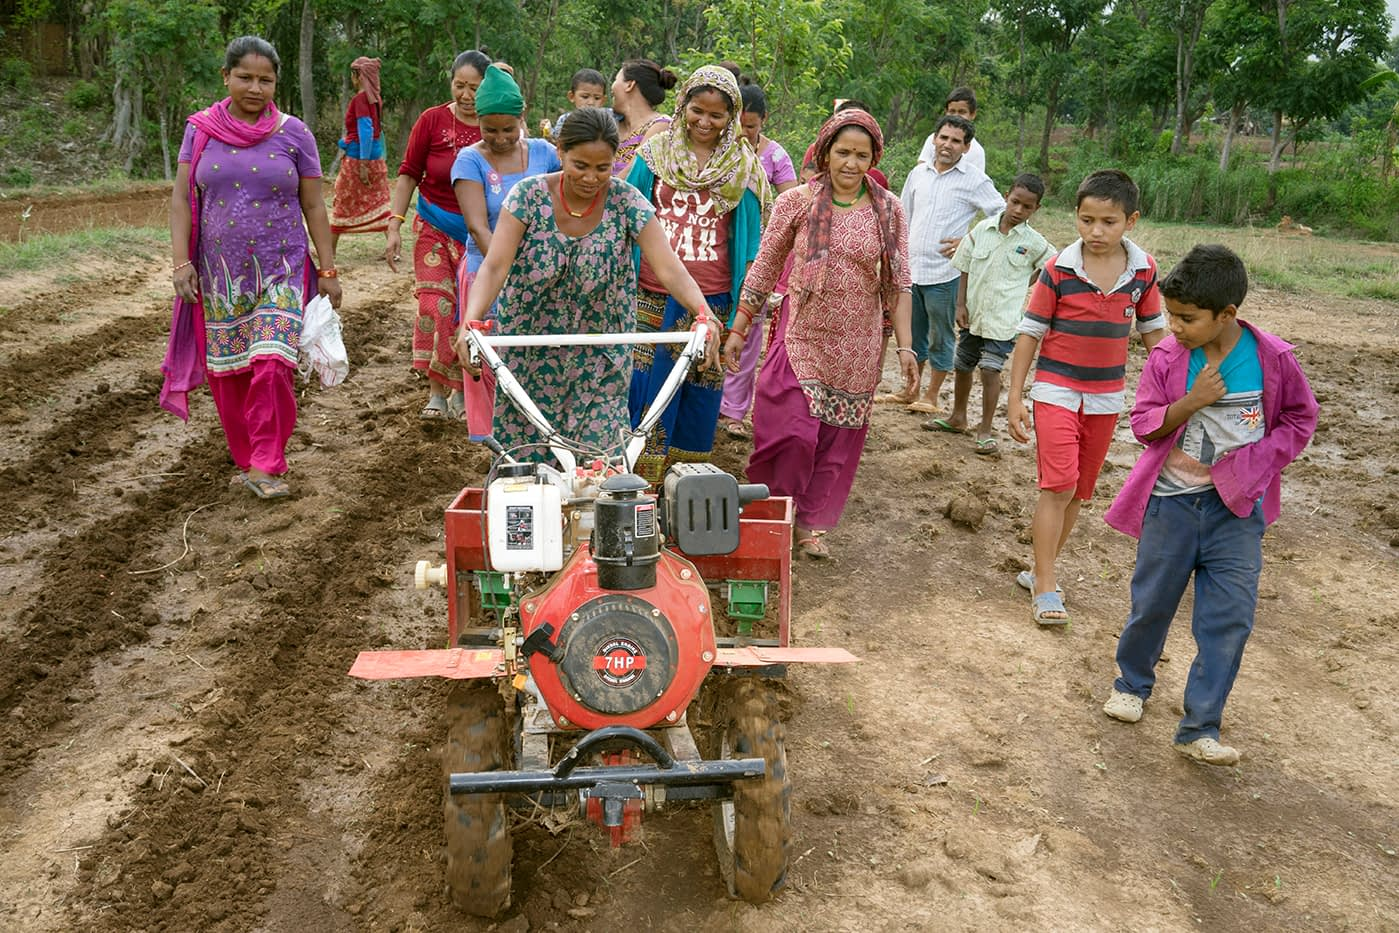 Women in Nepal using agricultural machinery. (Photo: Peter Lowe/CIMMYT)